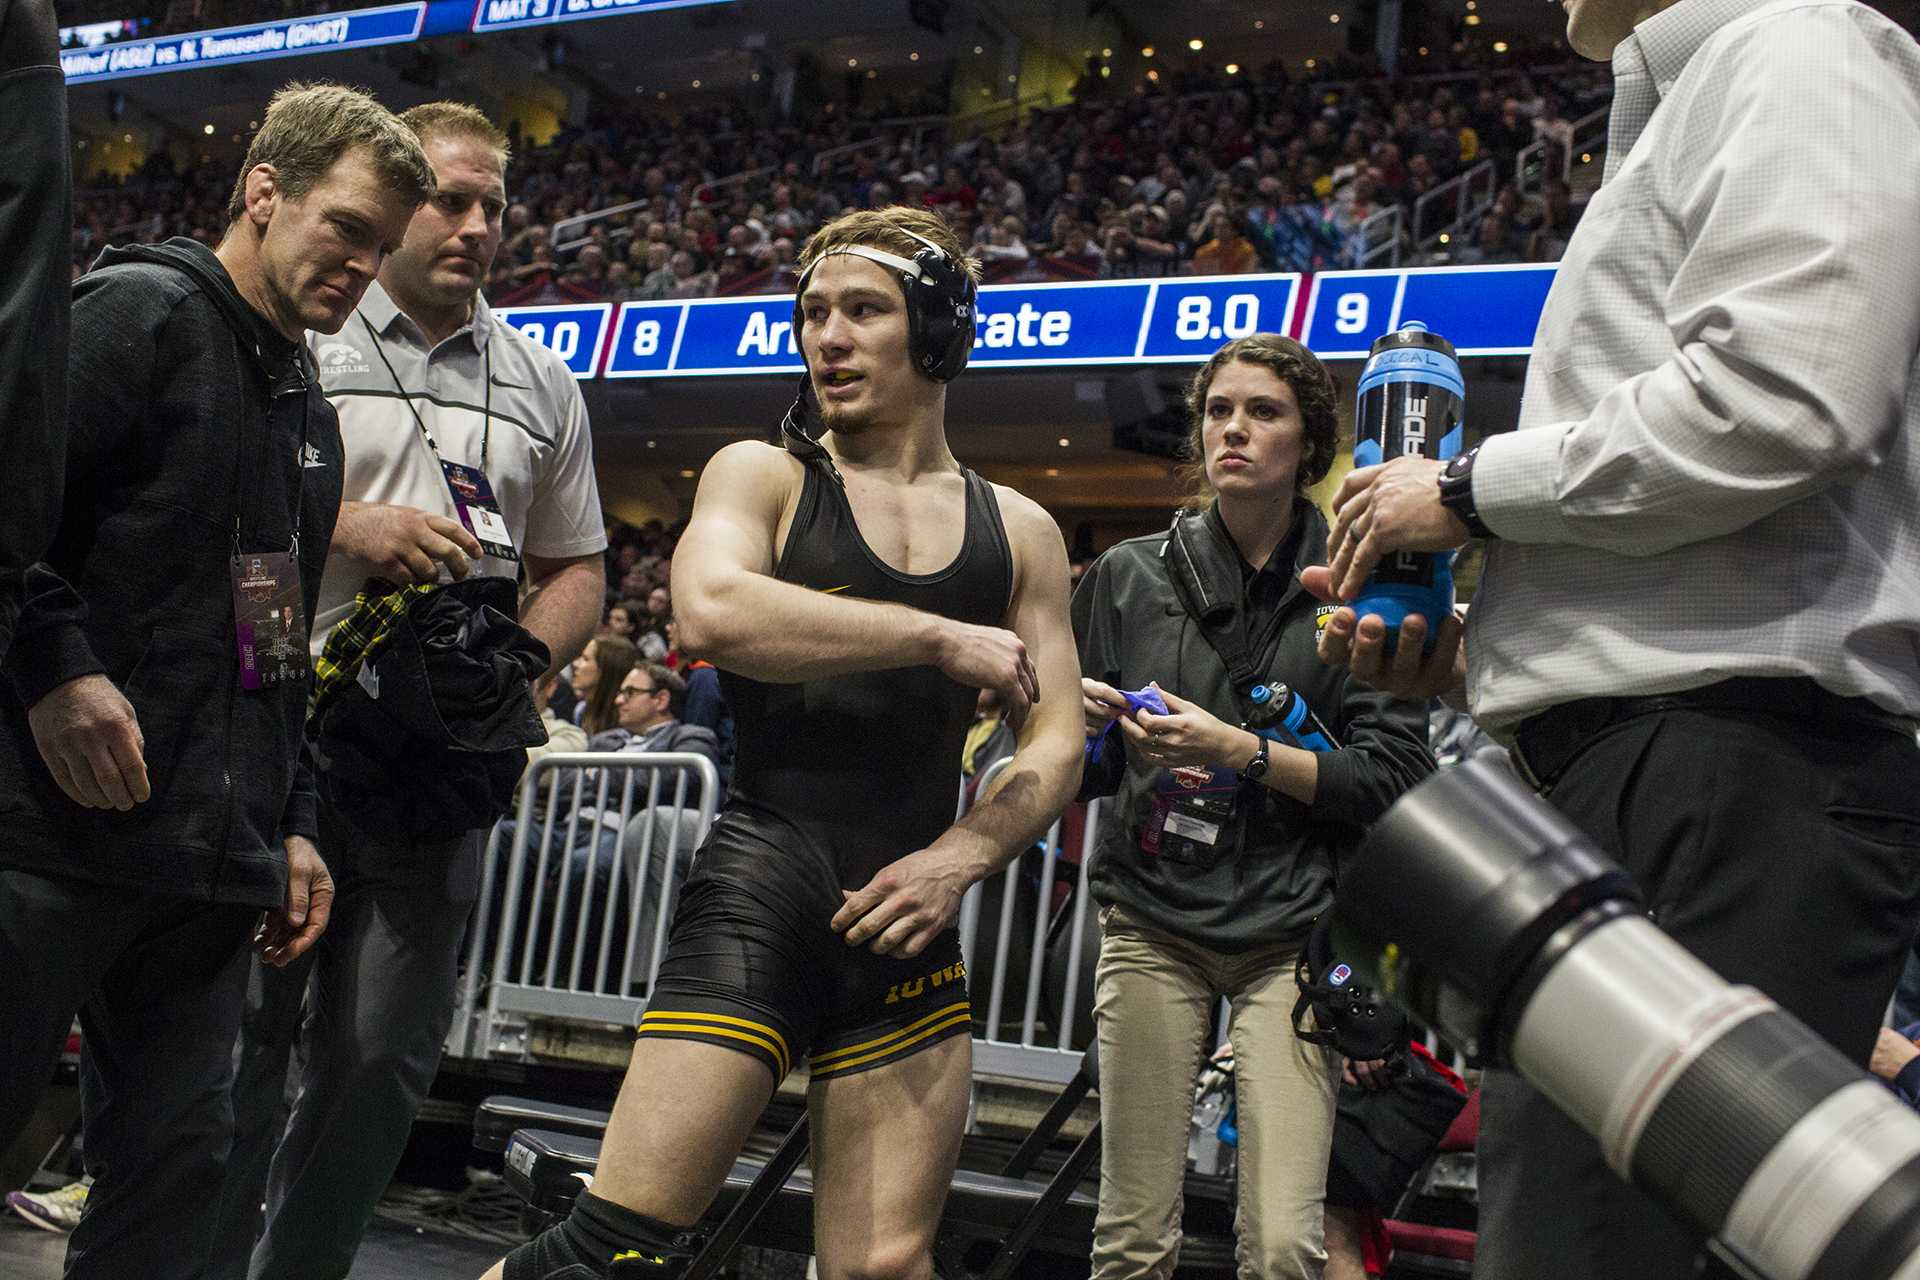 Iowa's 125-pound Spencer Lee walks off the mat after defeating Purdue's Luke Welch during Session 2 of the NCAAs Wrestling Championships at Quicken Loans Arena in Cleveland, Ohio on Thursday, March 15, 2018.